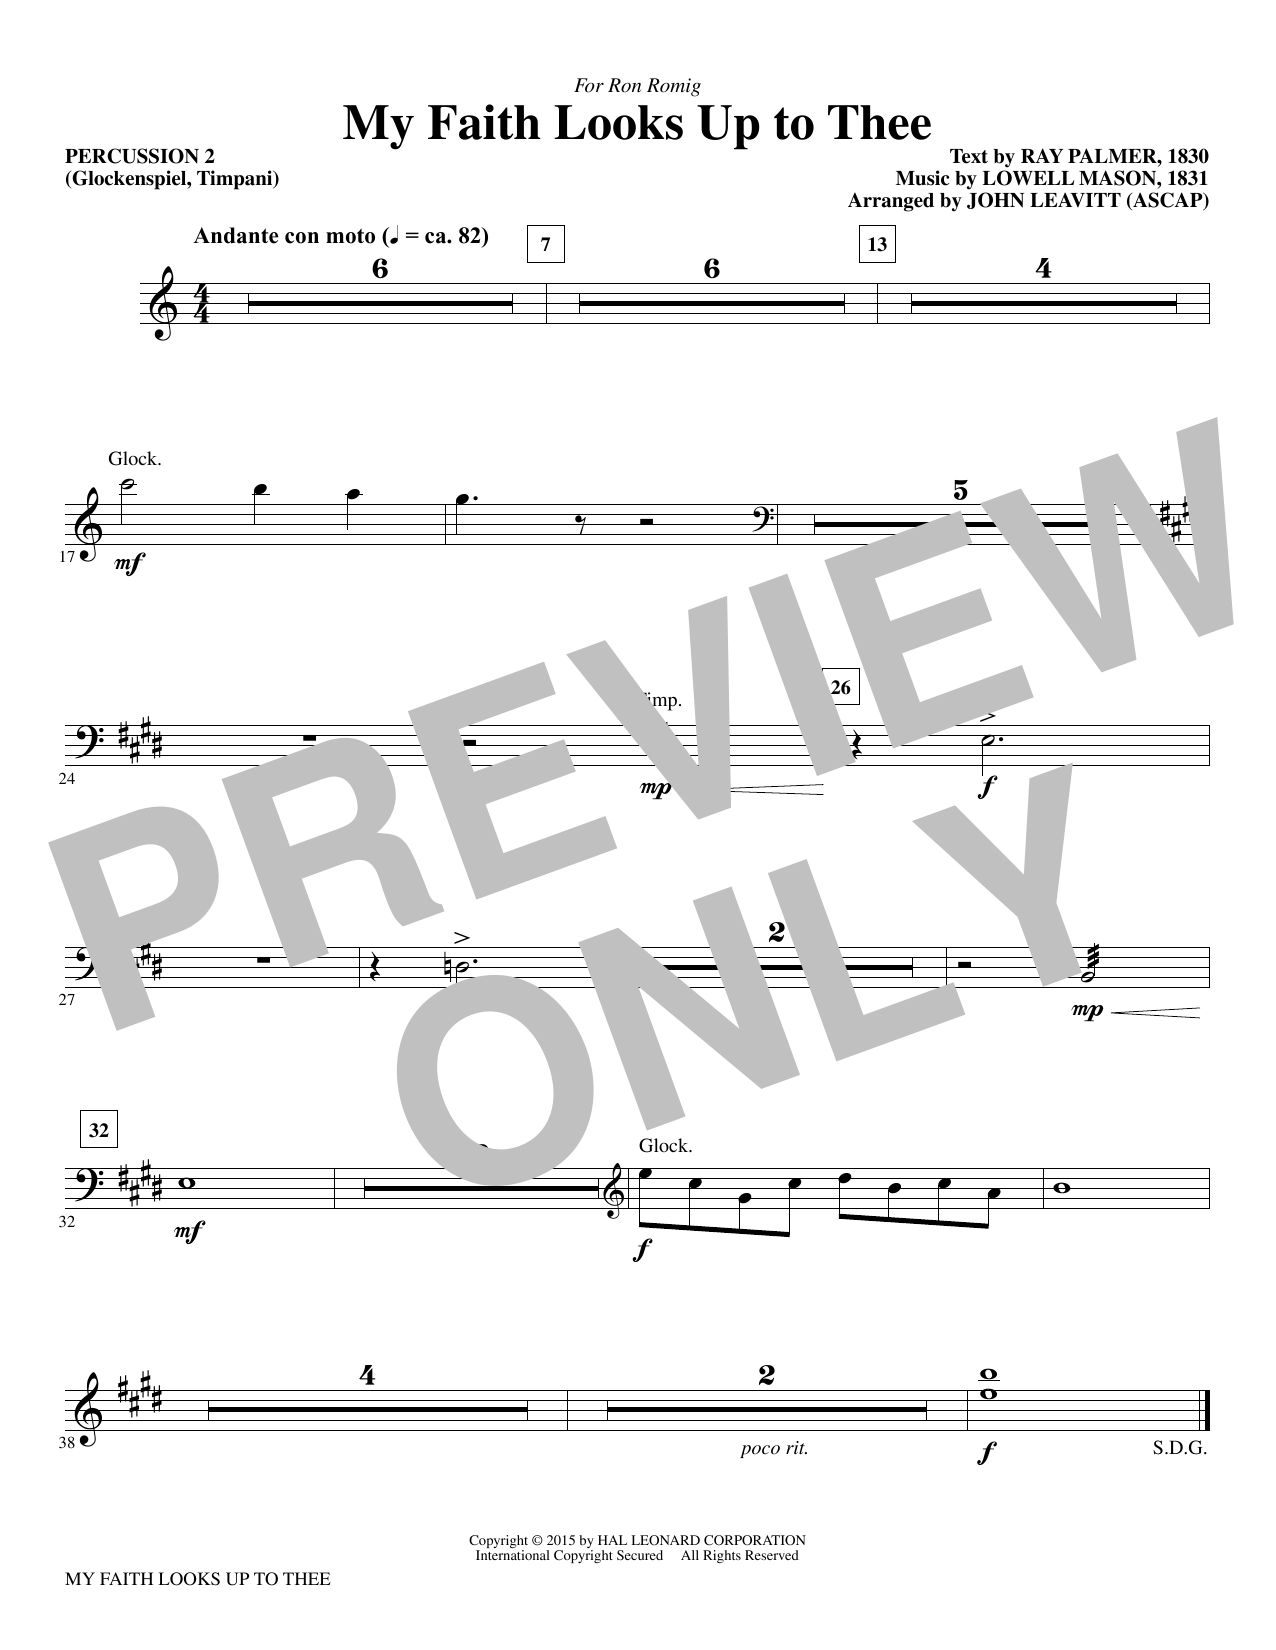 My Faith Looks Up To Thee - Percussion 2 Sheet Music